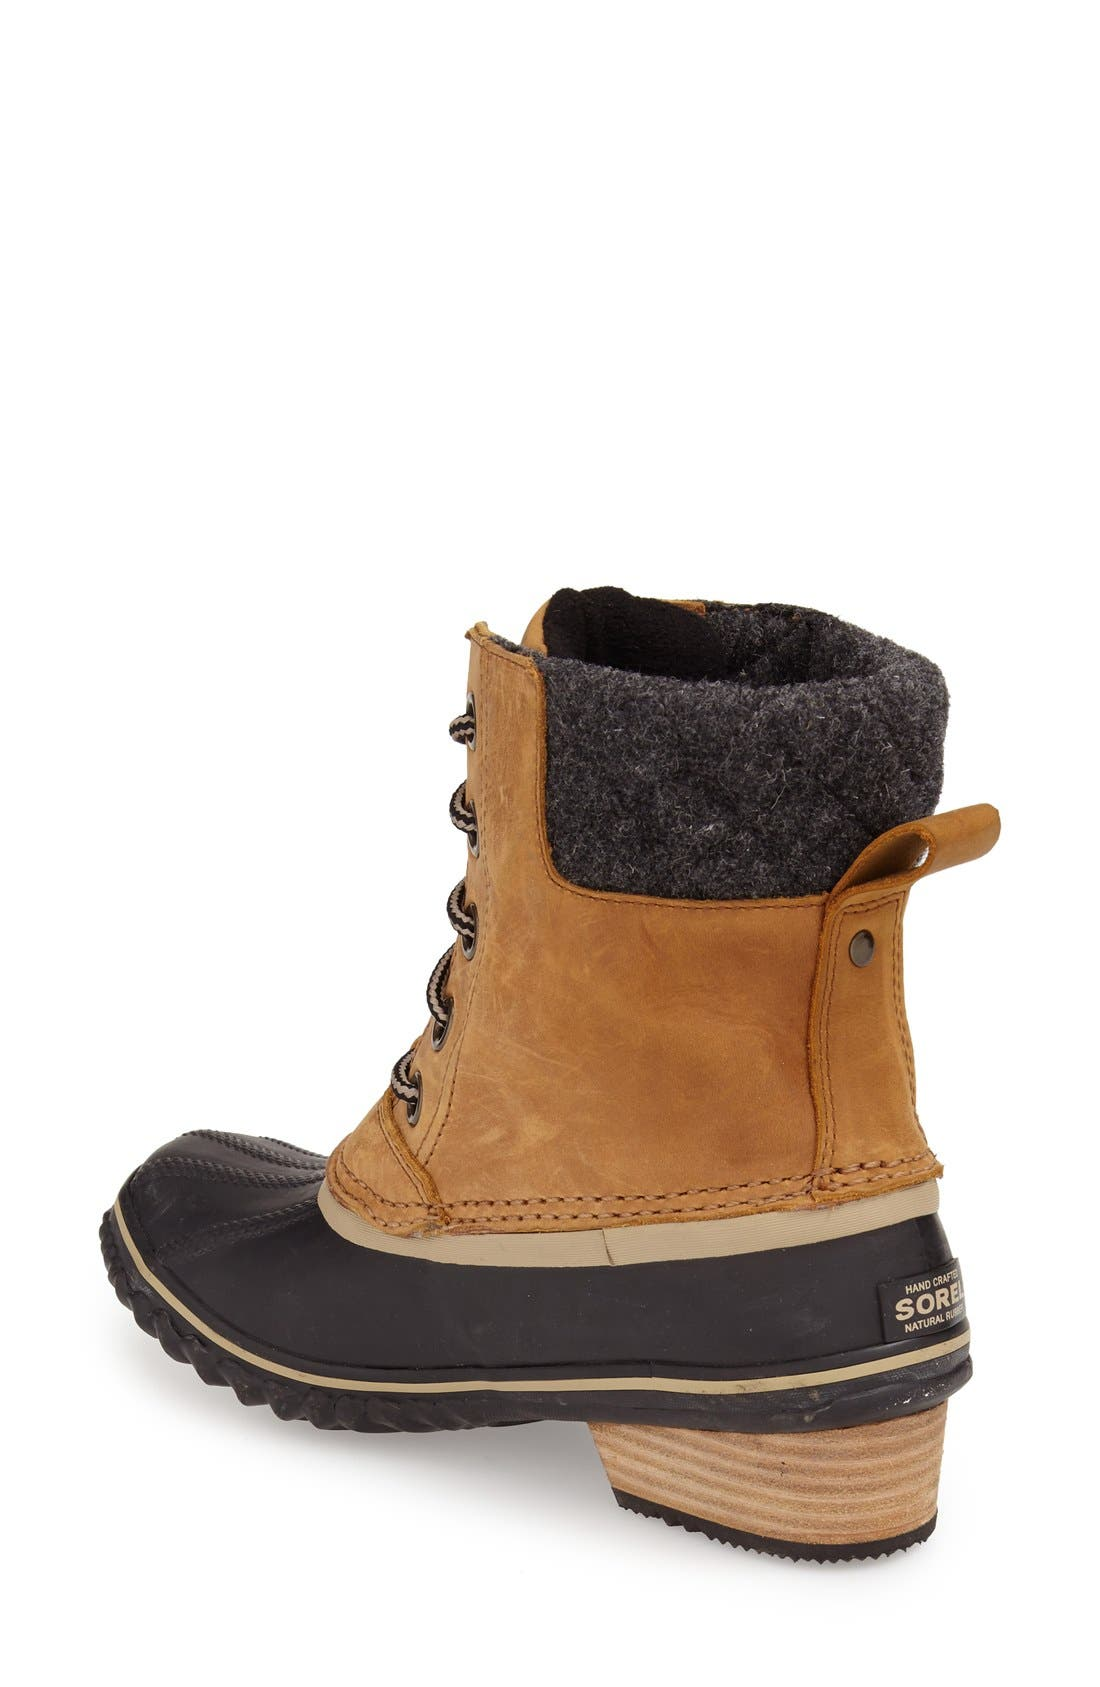 Alternate Image 2  - SOREL Slimpack II Waterproof Boot (Women)